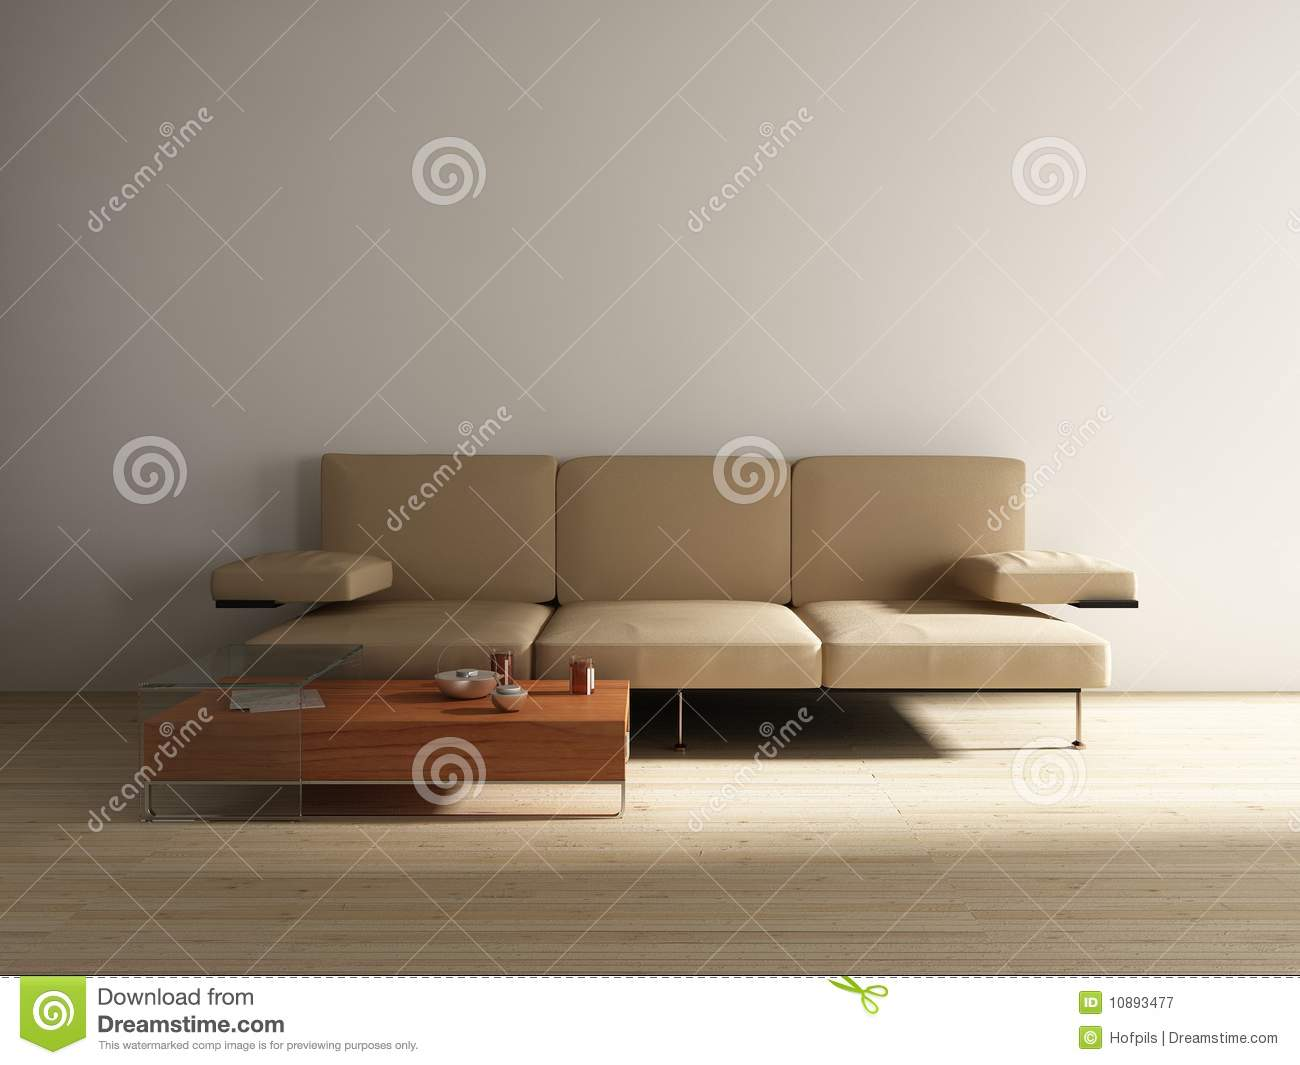 Living Room Setting Living Room Setting Royalty Free Stock Photography Image 10893477